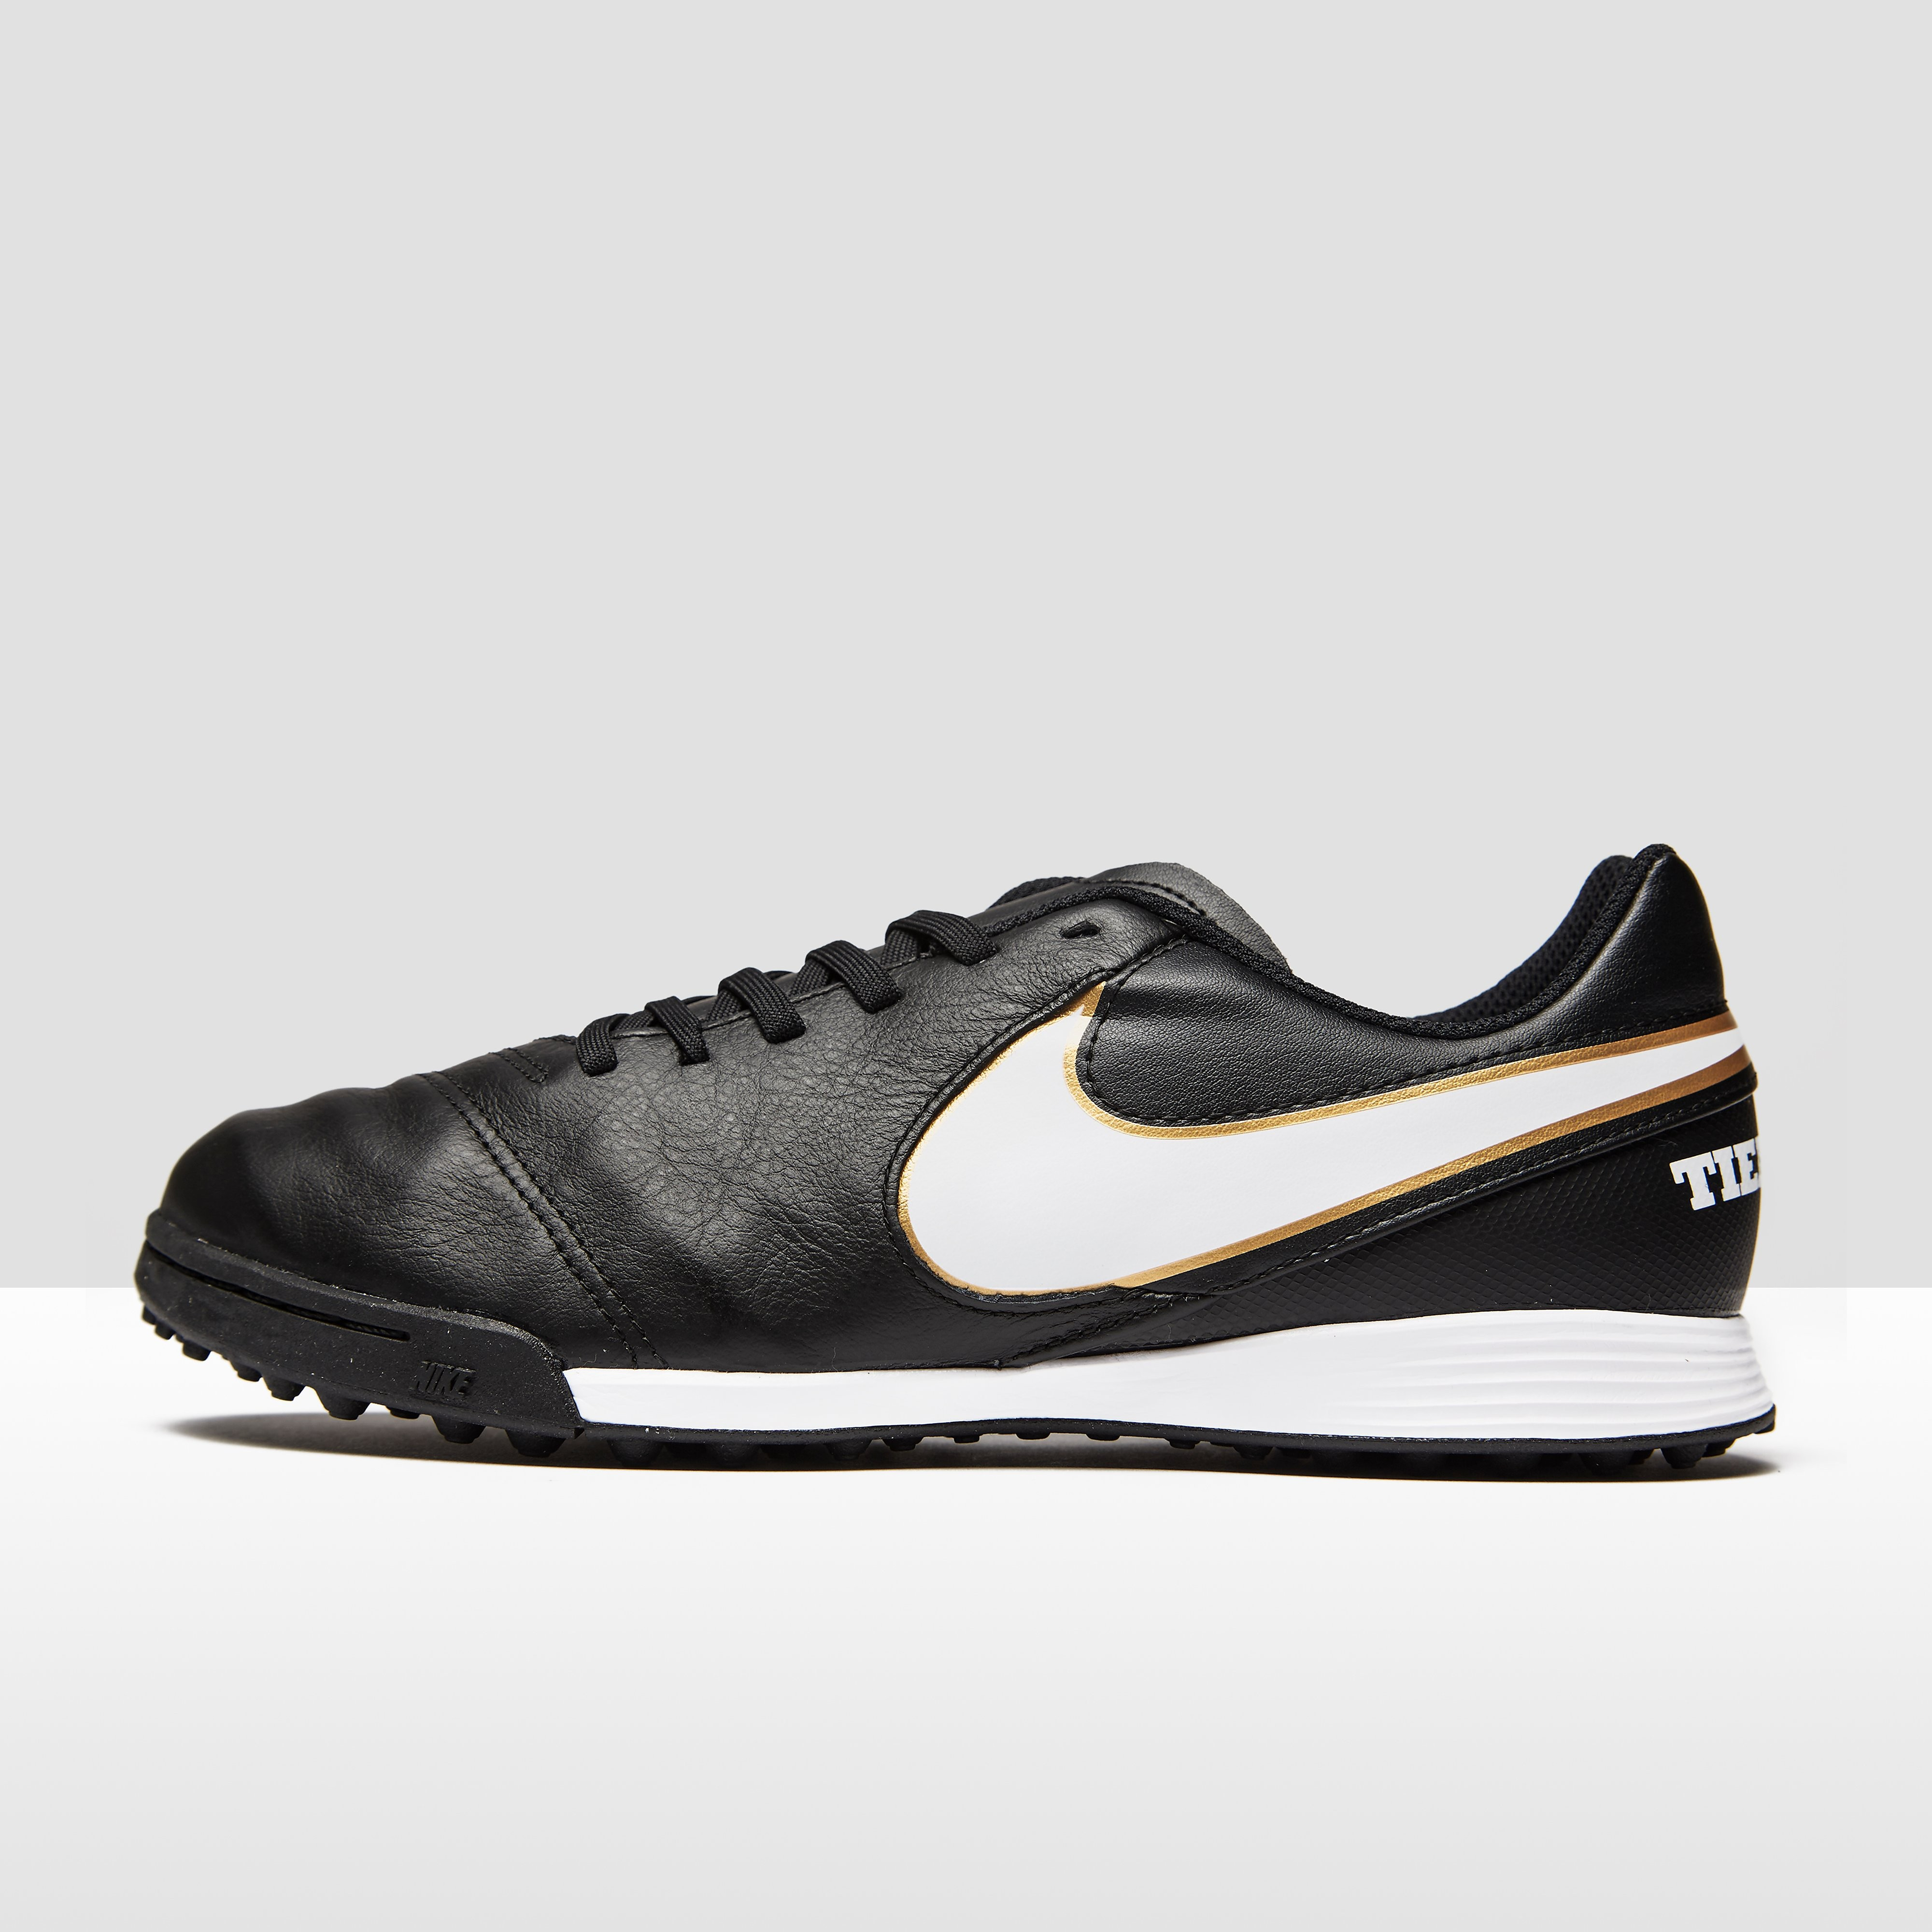 Nike TIEMPOX LEGEND VI TF JR